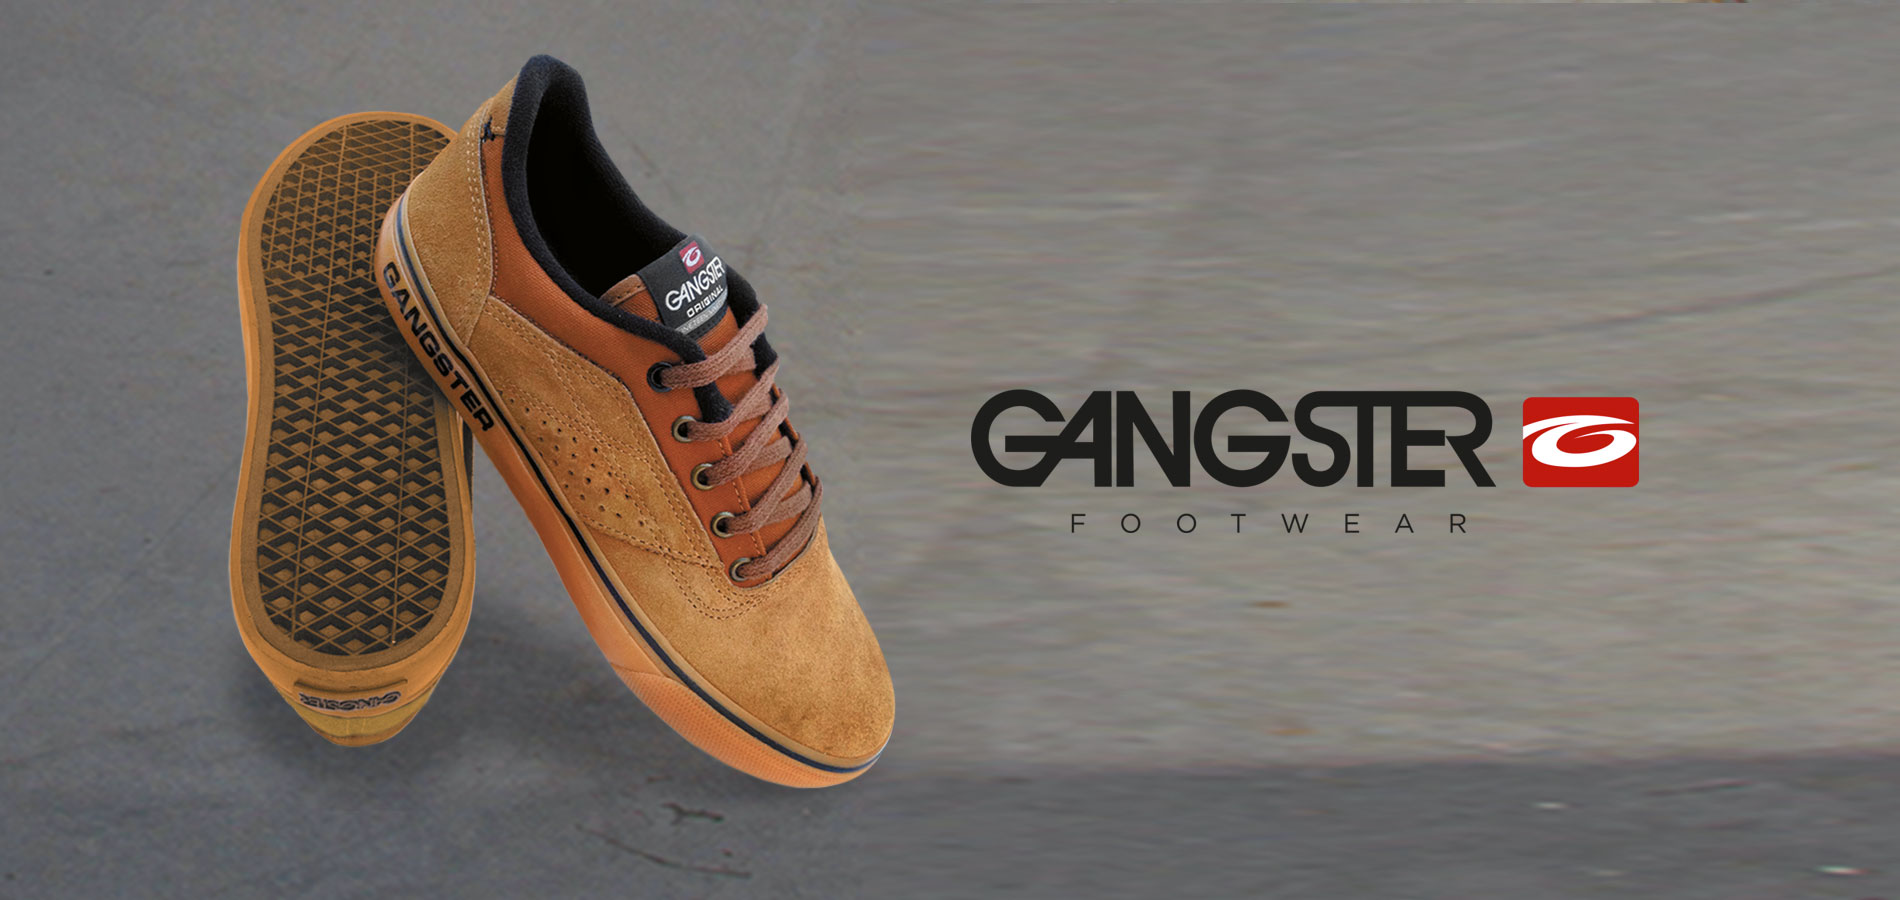 Gangster Footwear